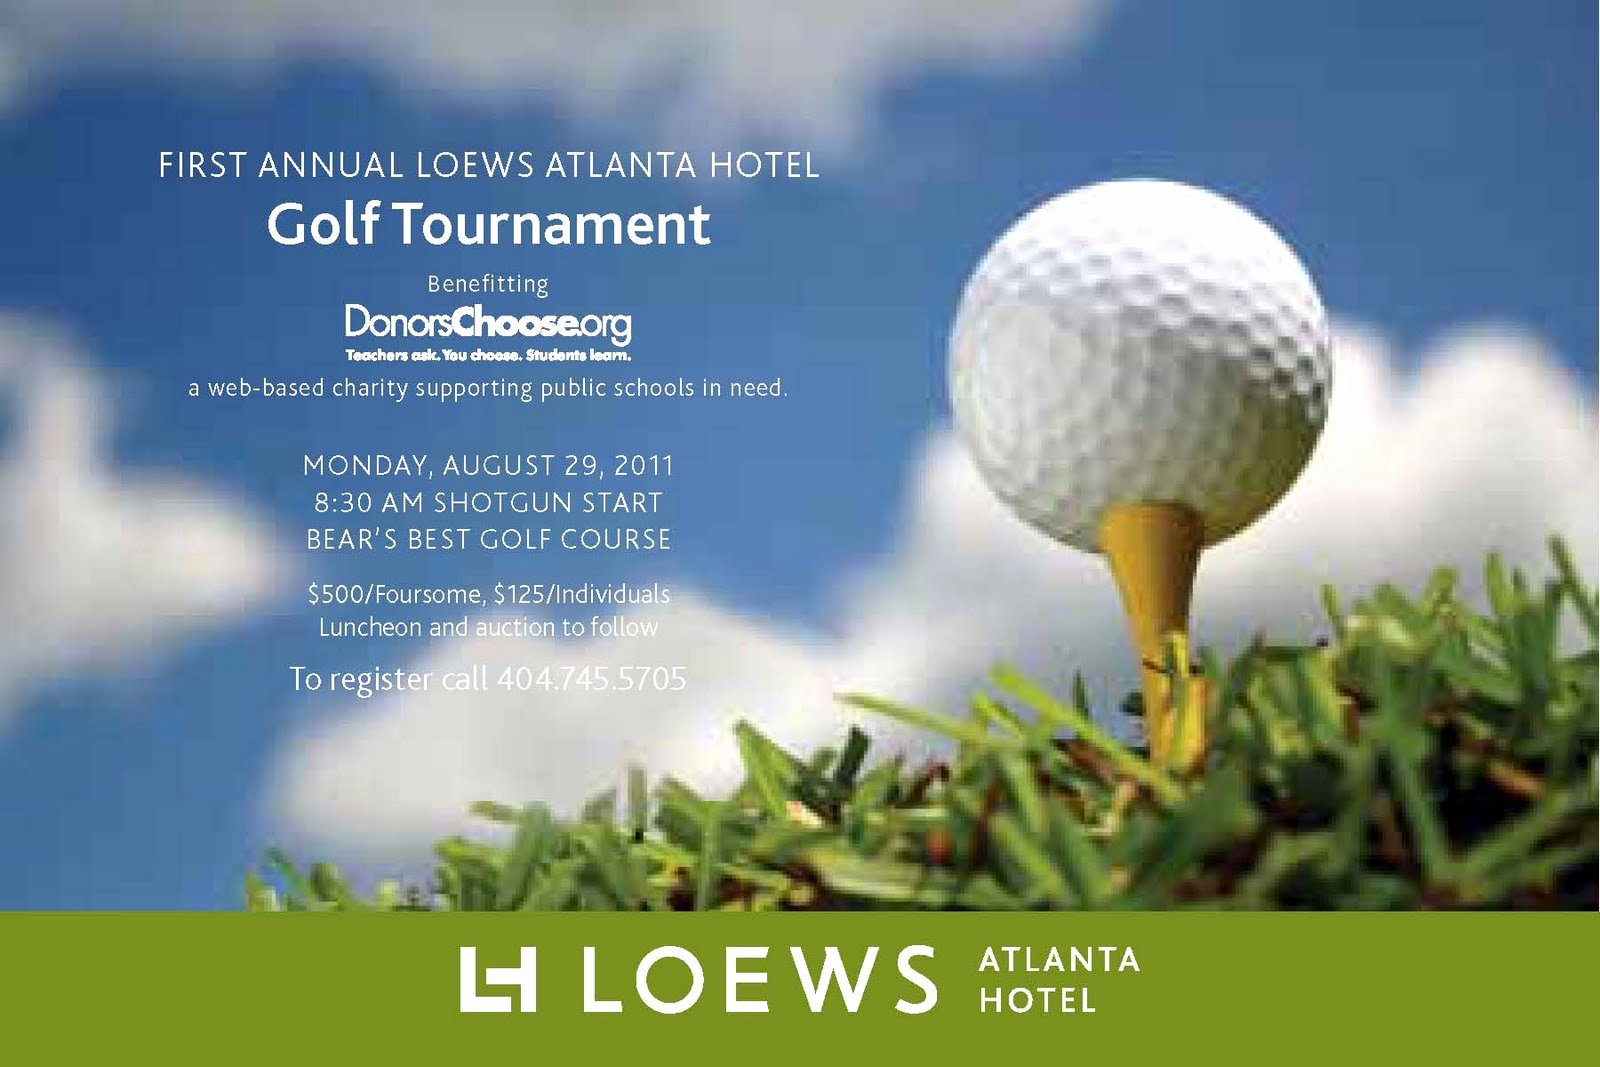 Free Golf tournament Flyer Template Luxury Everything Midtown atlanta Join Loews atlanta Hotel for their First Annual Golf tournament